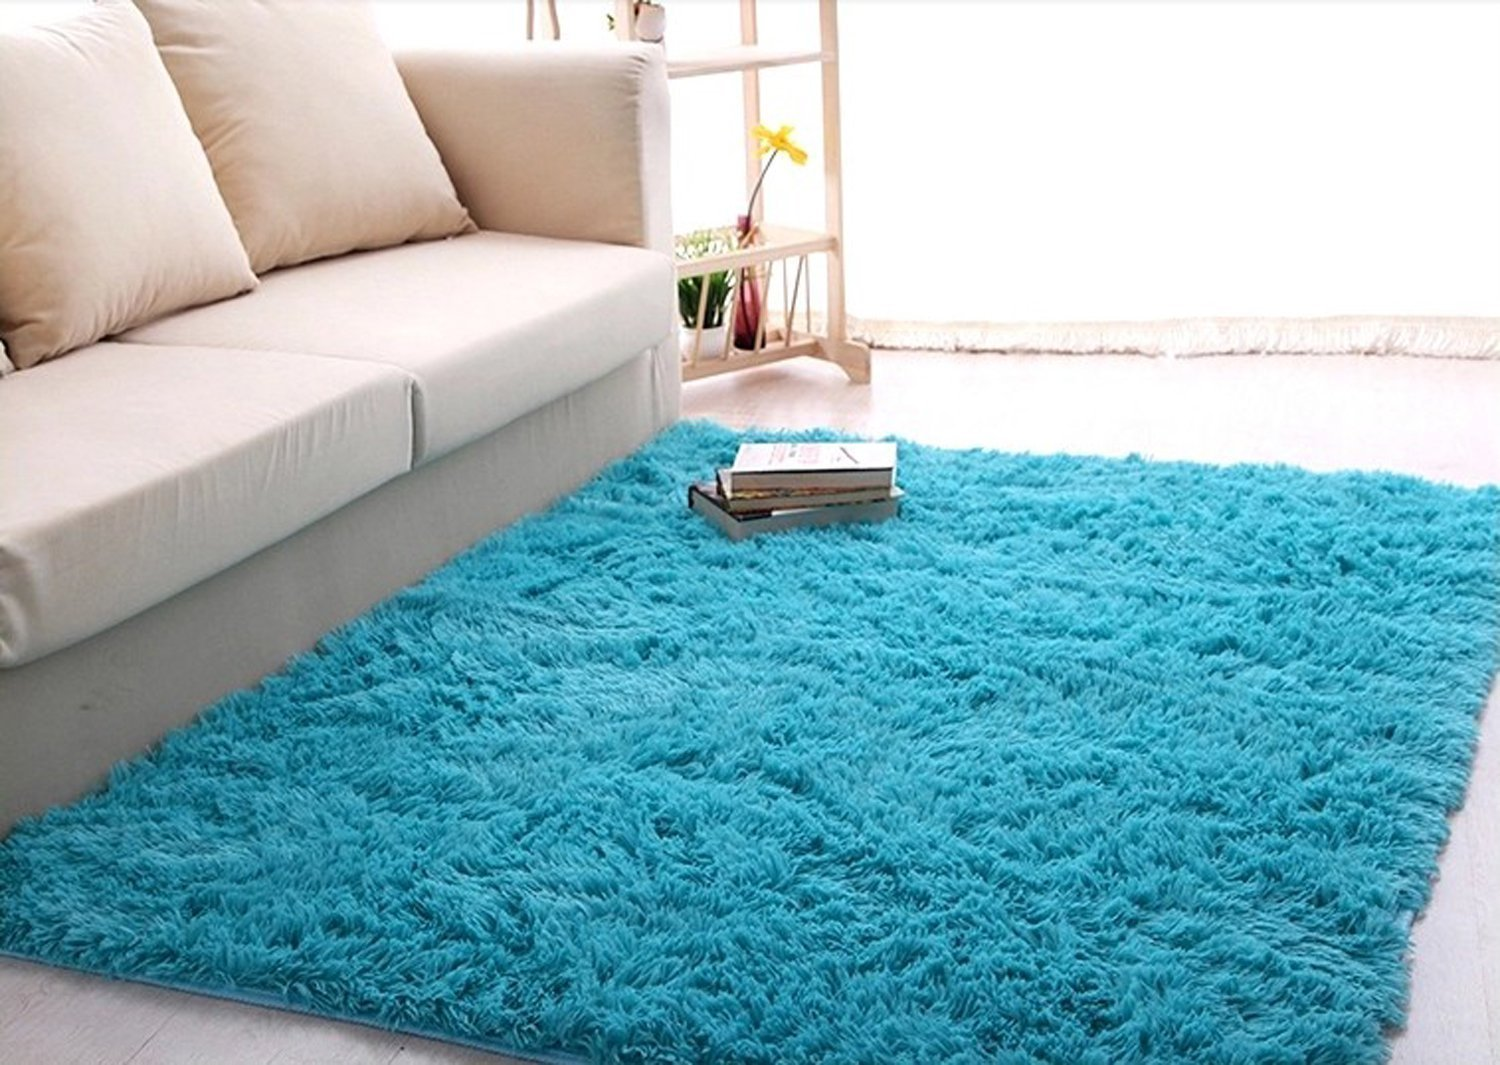 Amazon.com : Newrara Super Soft 4.5 Cm Thick Modern Shag Area Rugs Living  Room Carpet Bedroom Rug For Childrenu0027s Play Rug Floor Rug Nursery Rug 4  Feet By 5 ...